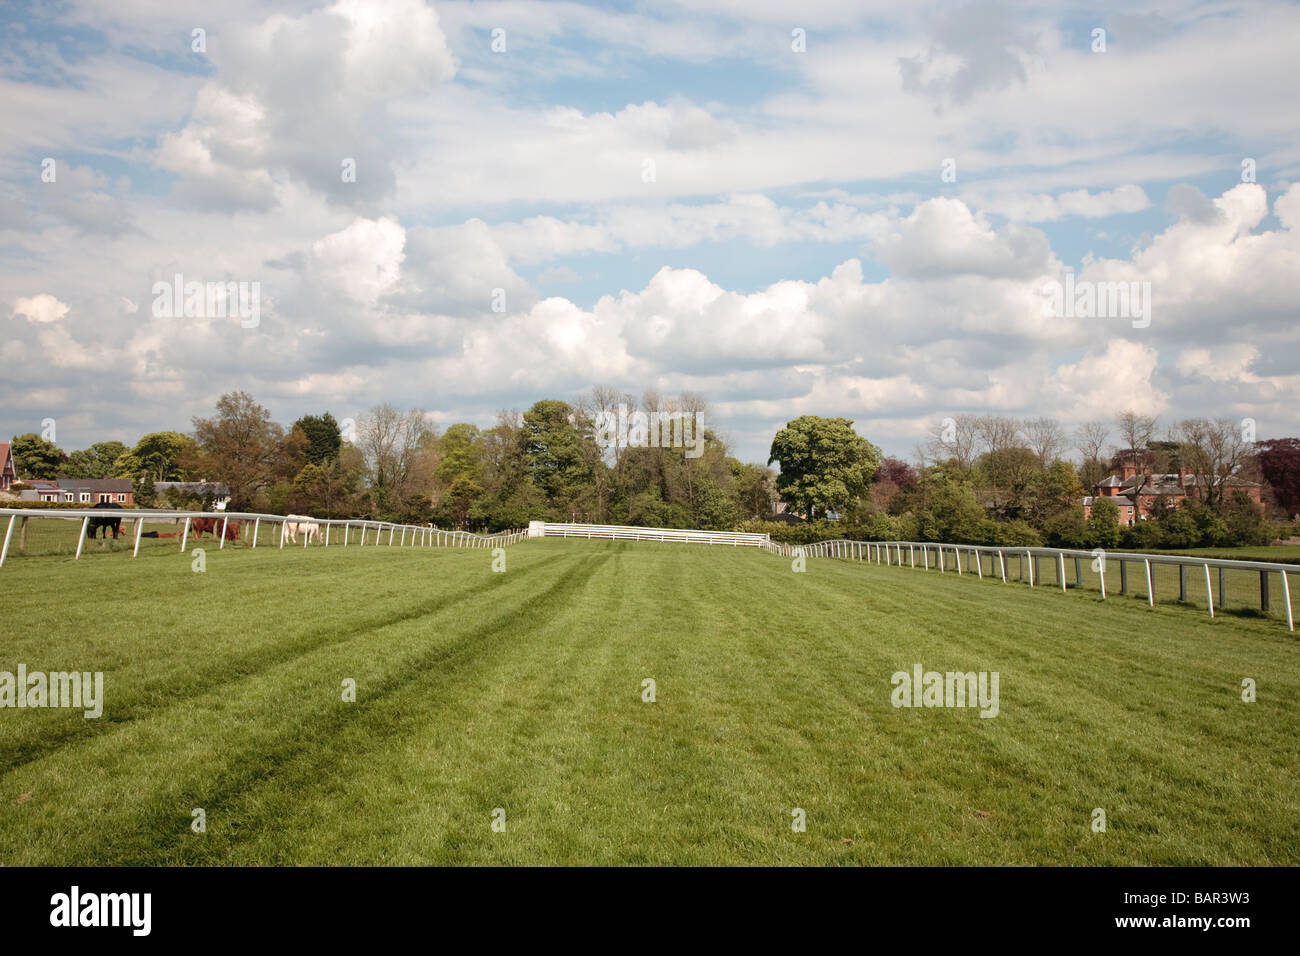 Race Course Beverley Westwood, Beverley, East Yorkshire, Inghilterra, Regno Unito Immagini Stock